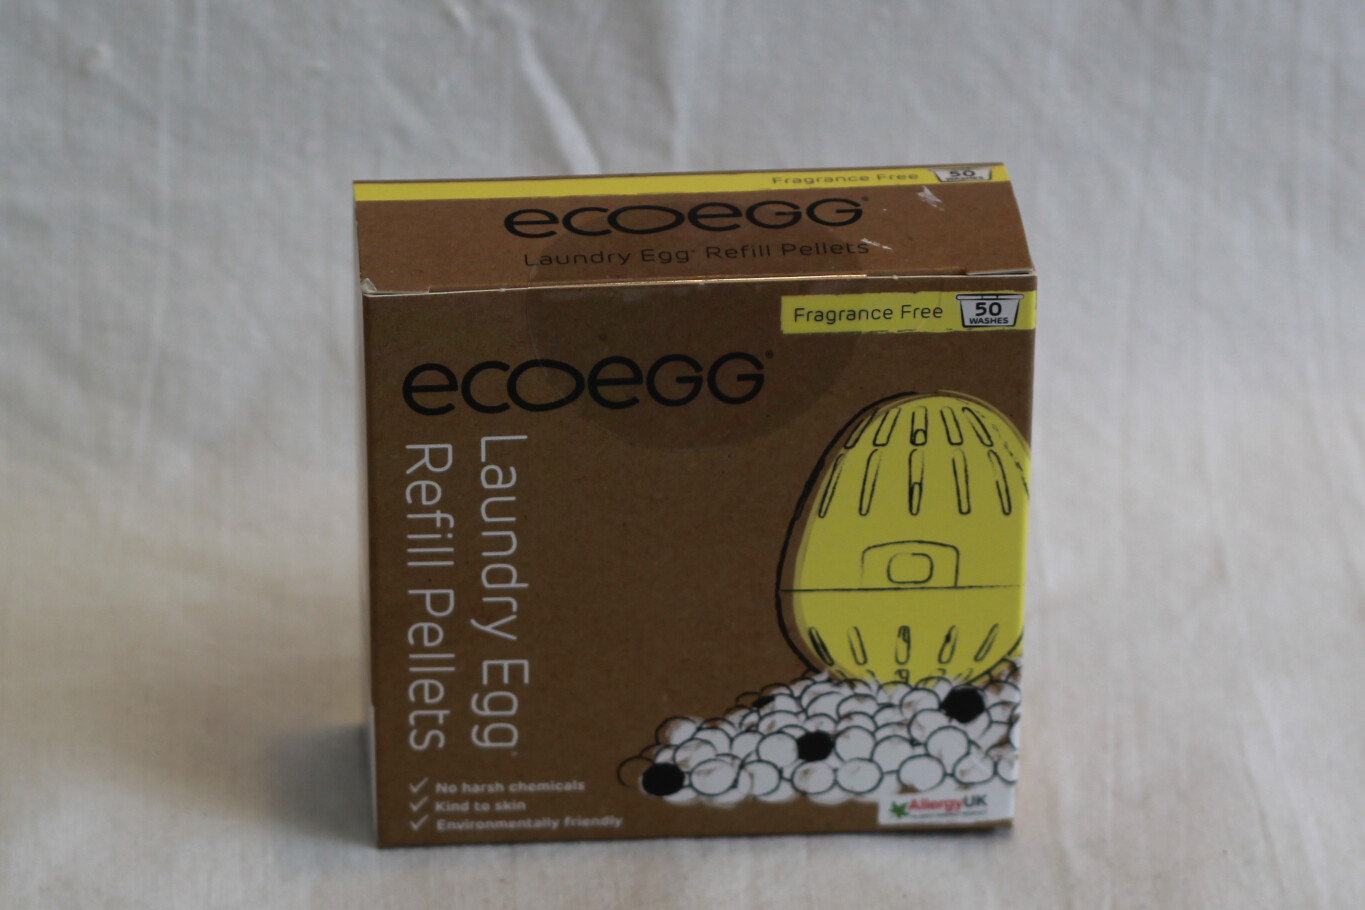 Ecoegg Laundry Egg Refill Pellets Fragrance Free